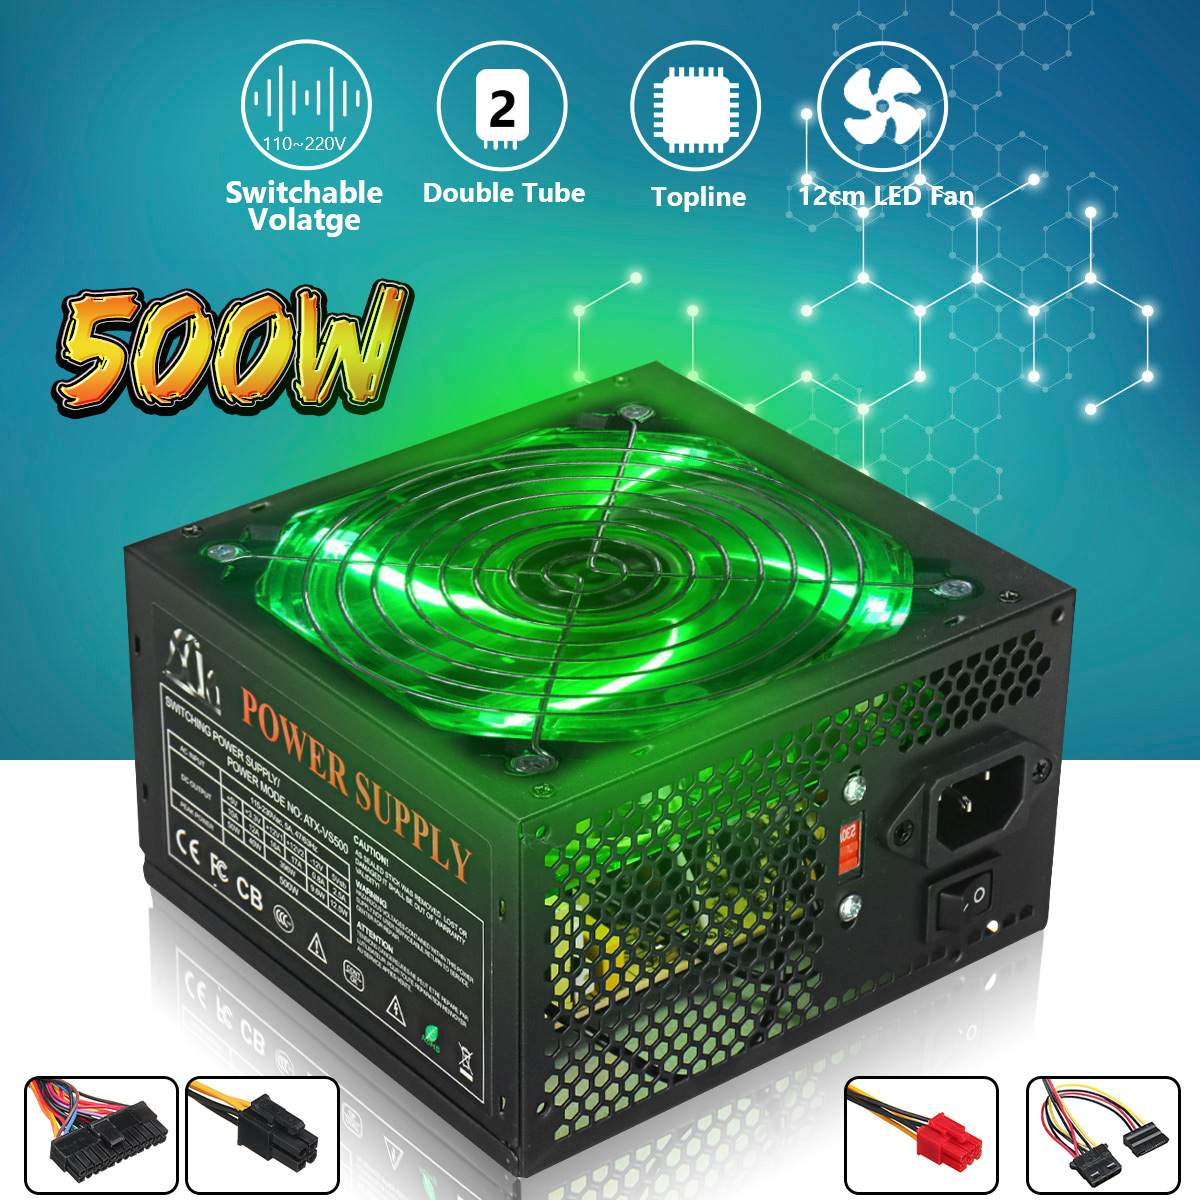 500W Power Supply 120mm LED Fan 24 Pin PCI SATA ATX 12V PC Computer Power Supply 110~220V For Desktop Gaming